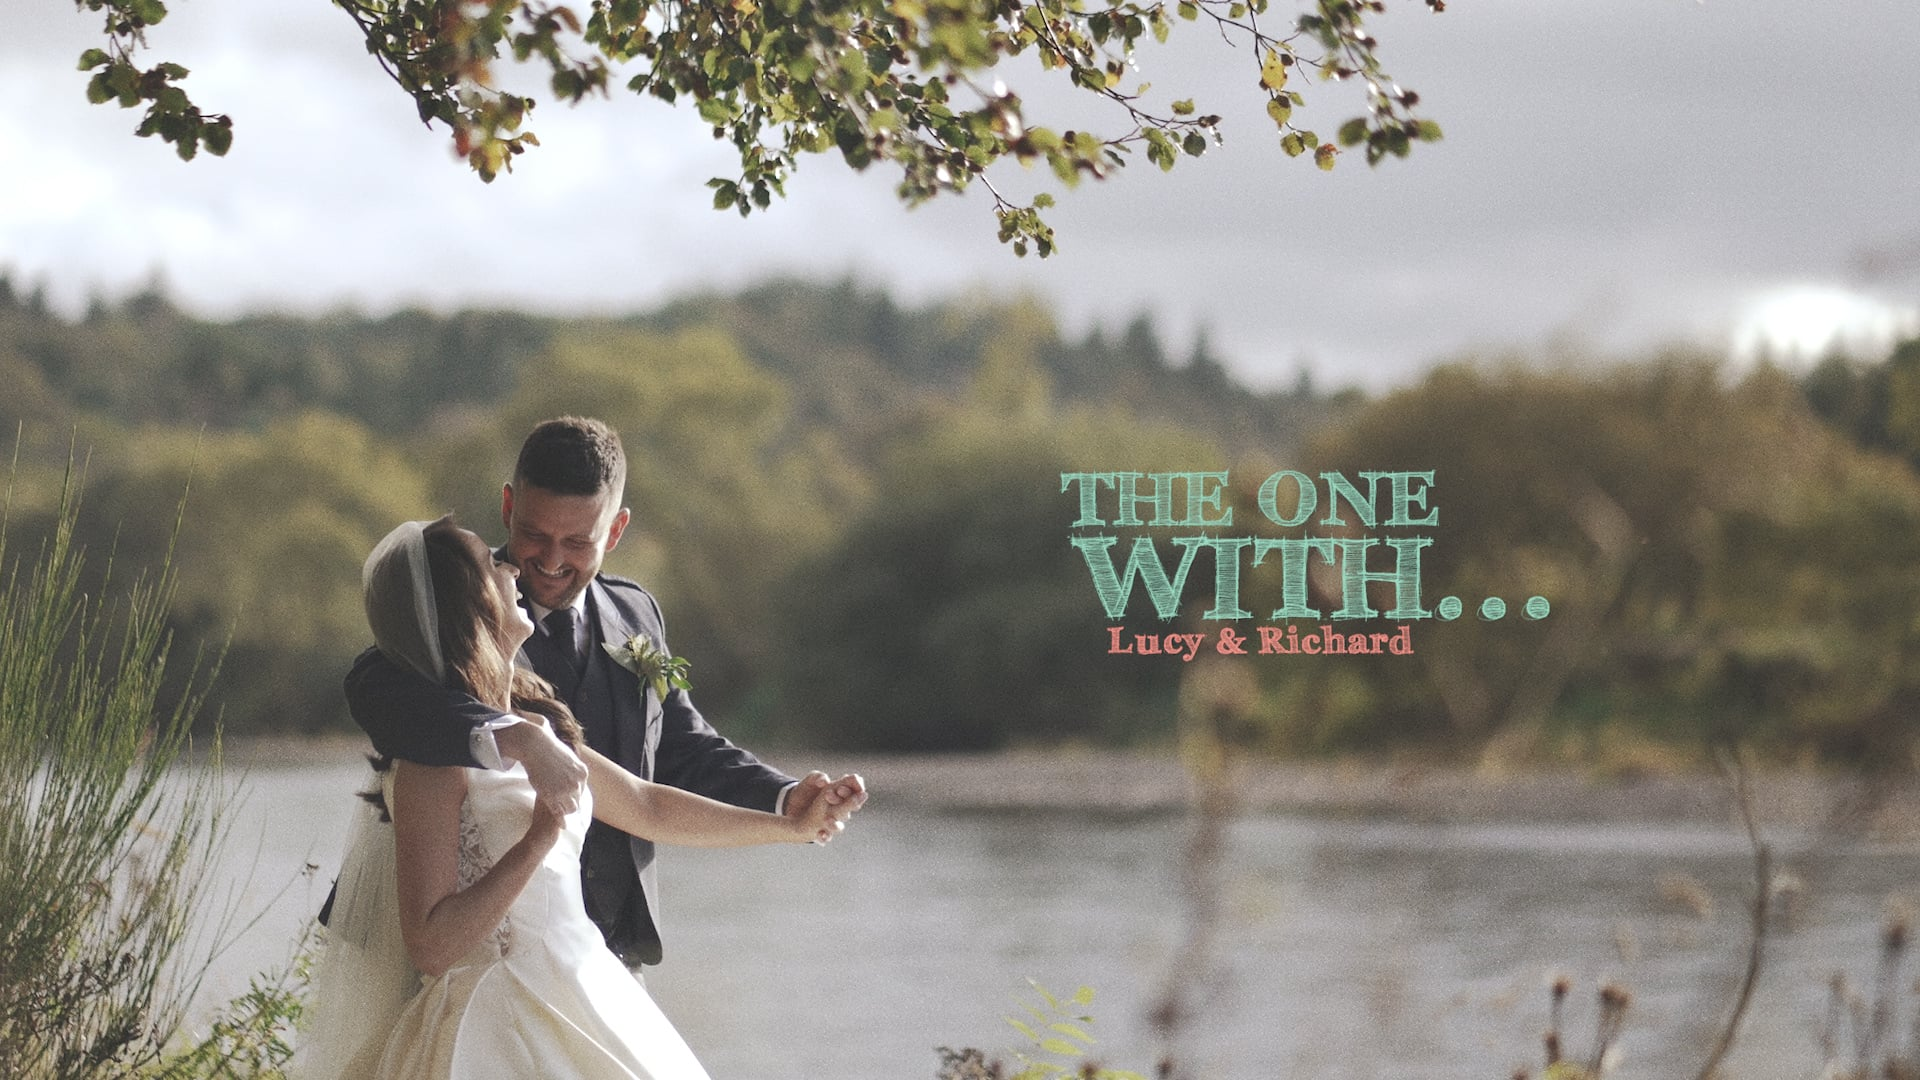 The One With...by Lucy and Richard